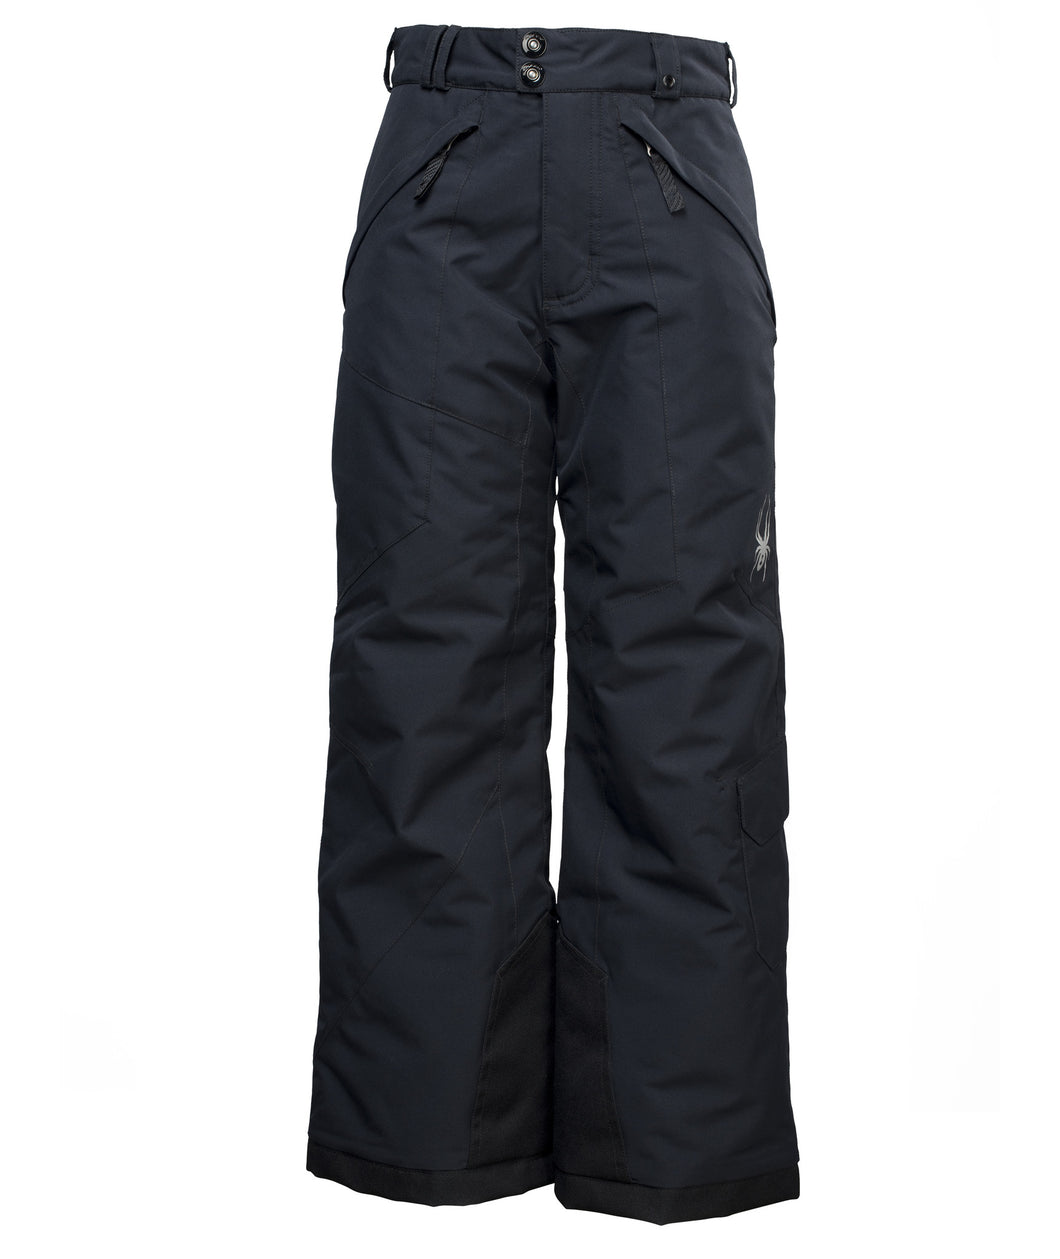 Spyder Action Pant 2015 - Boys'